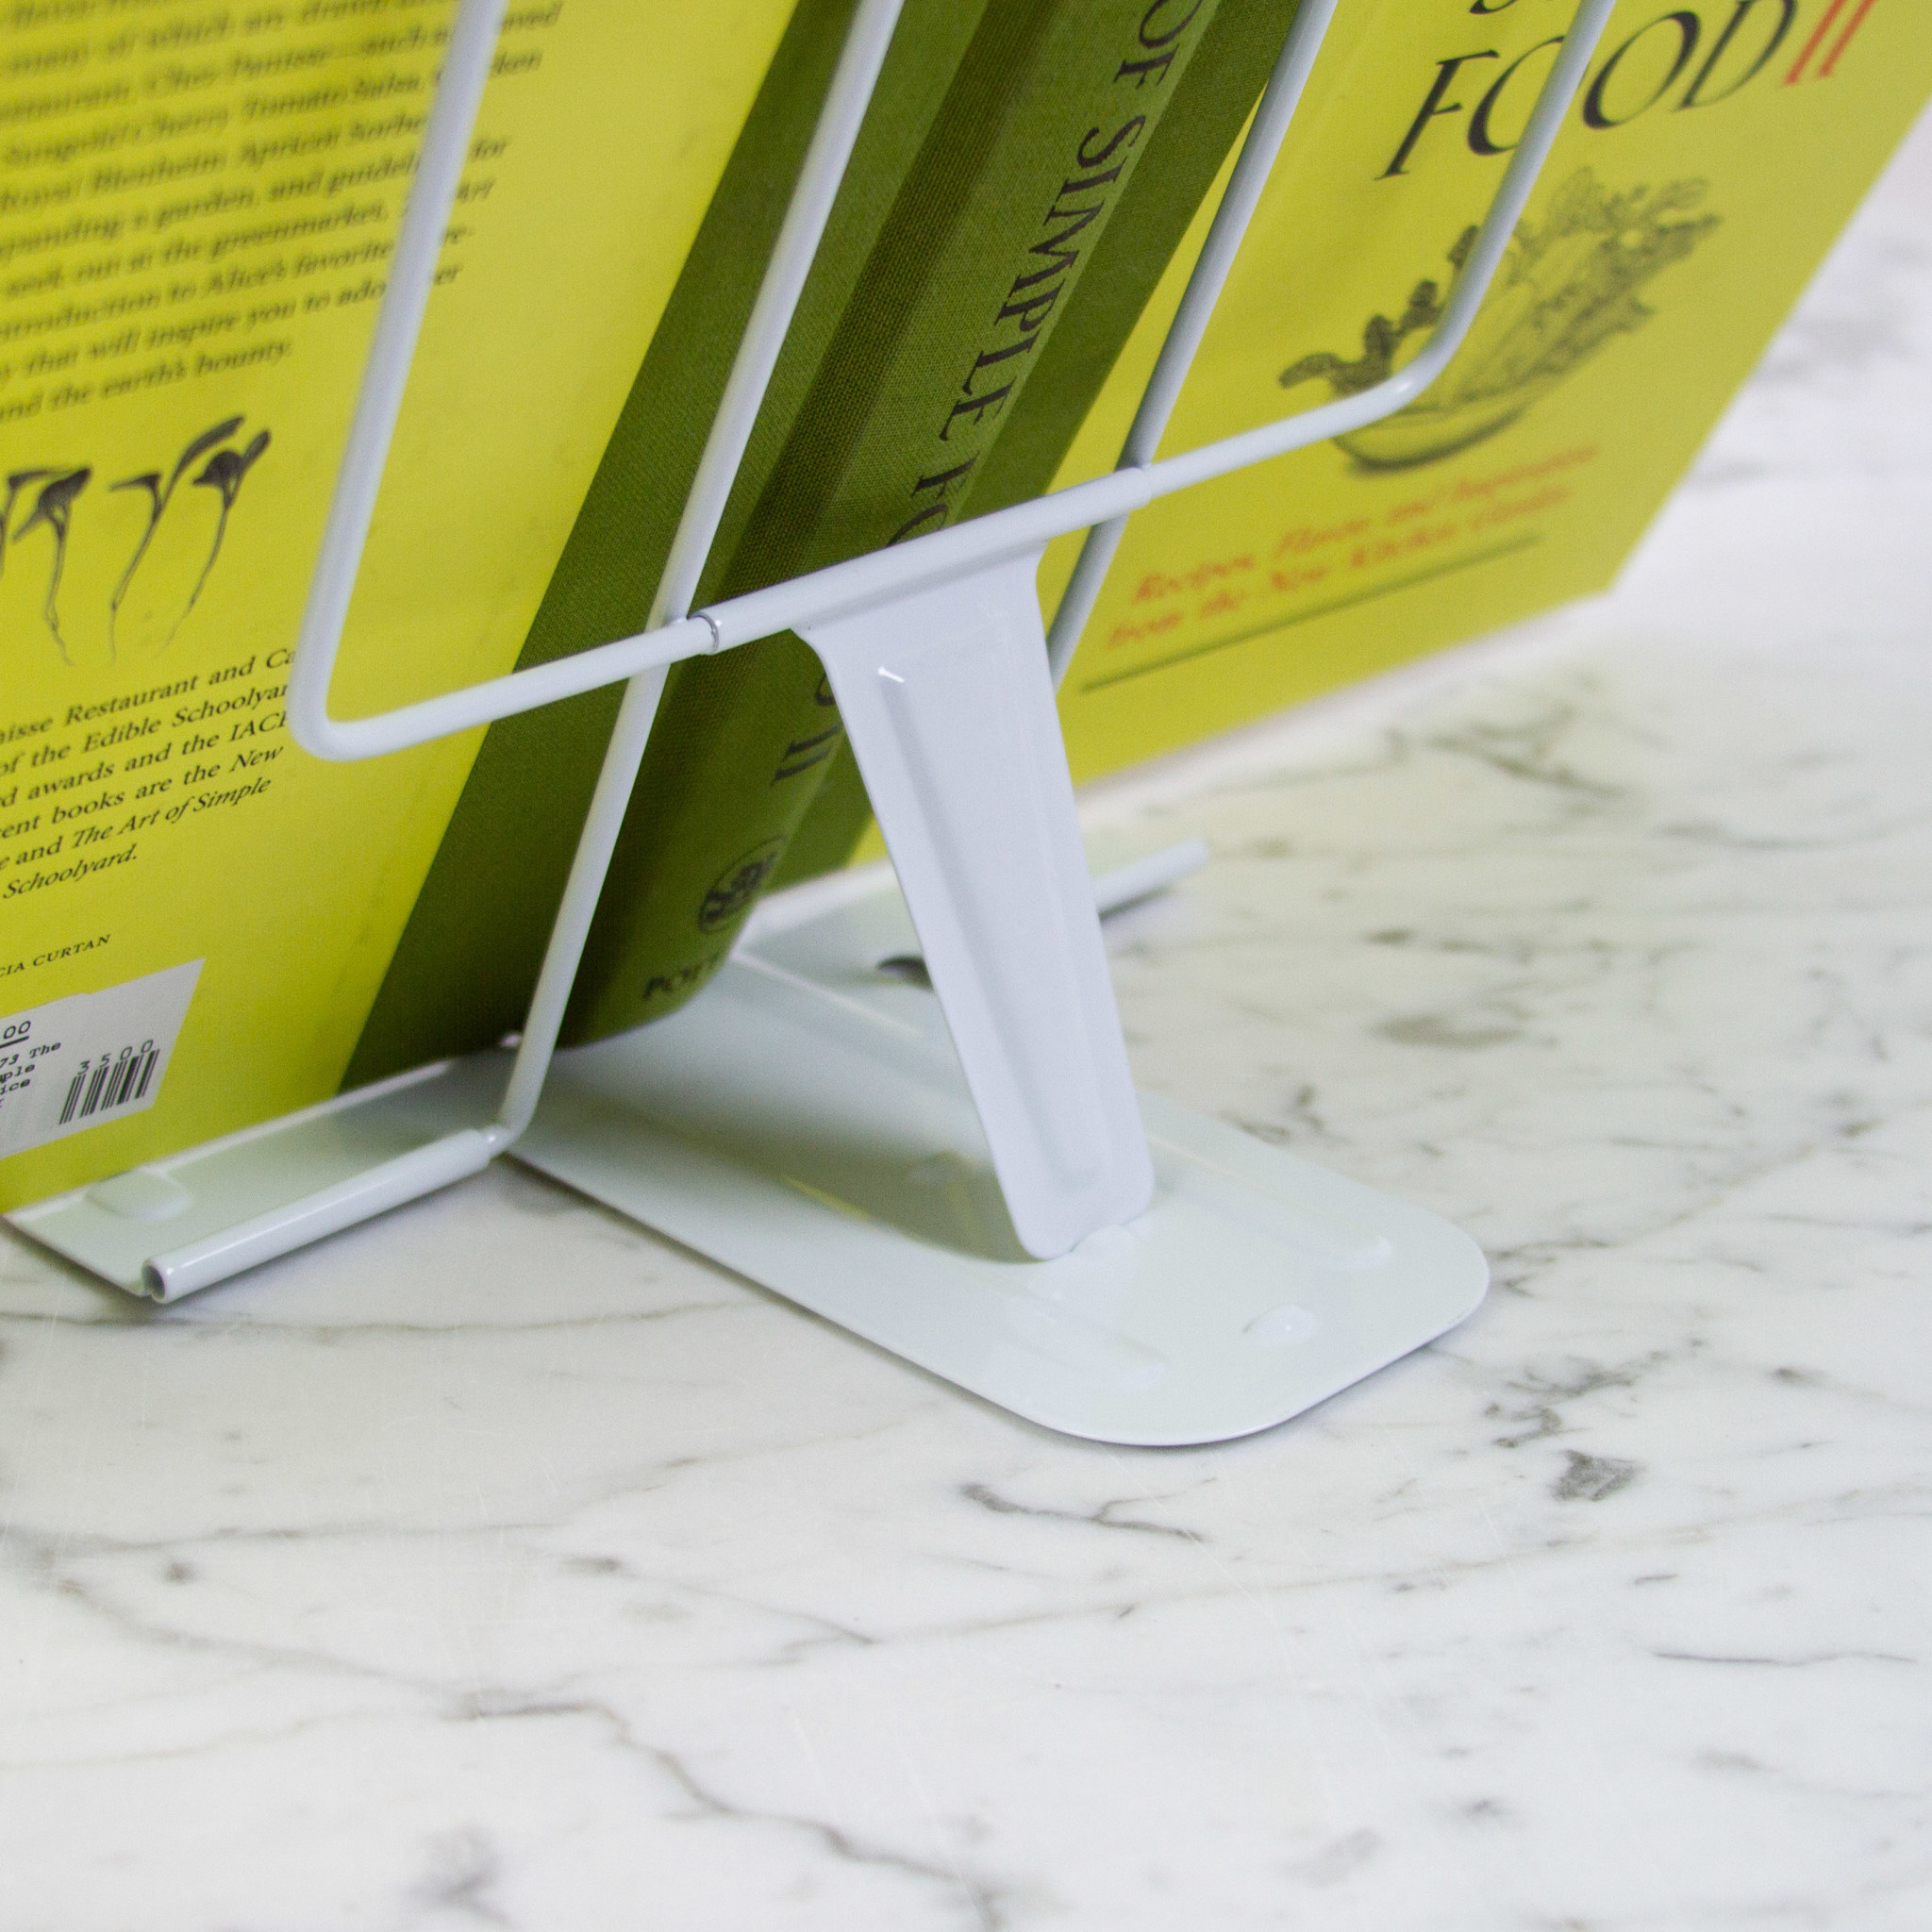 Metal Adjustable + Collapsible Book Stand - White